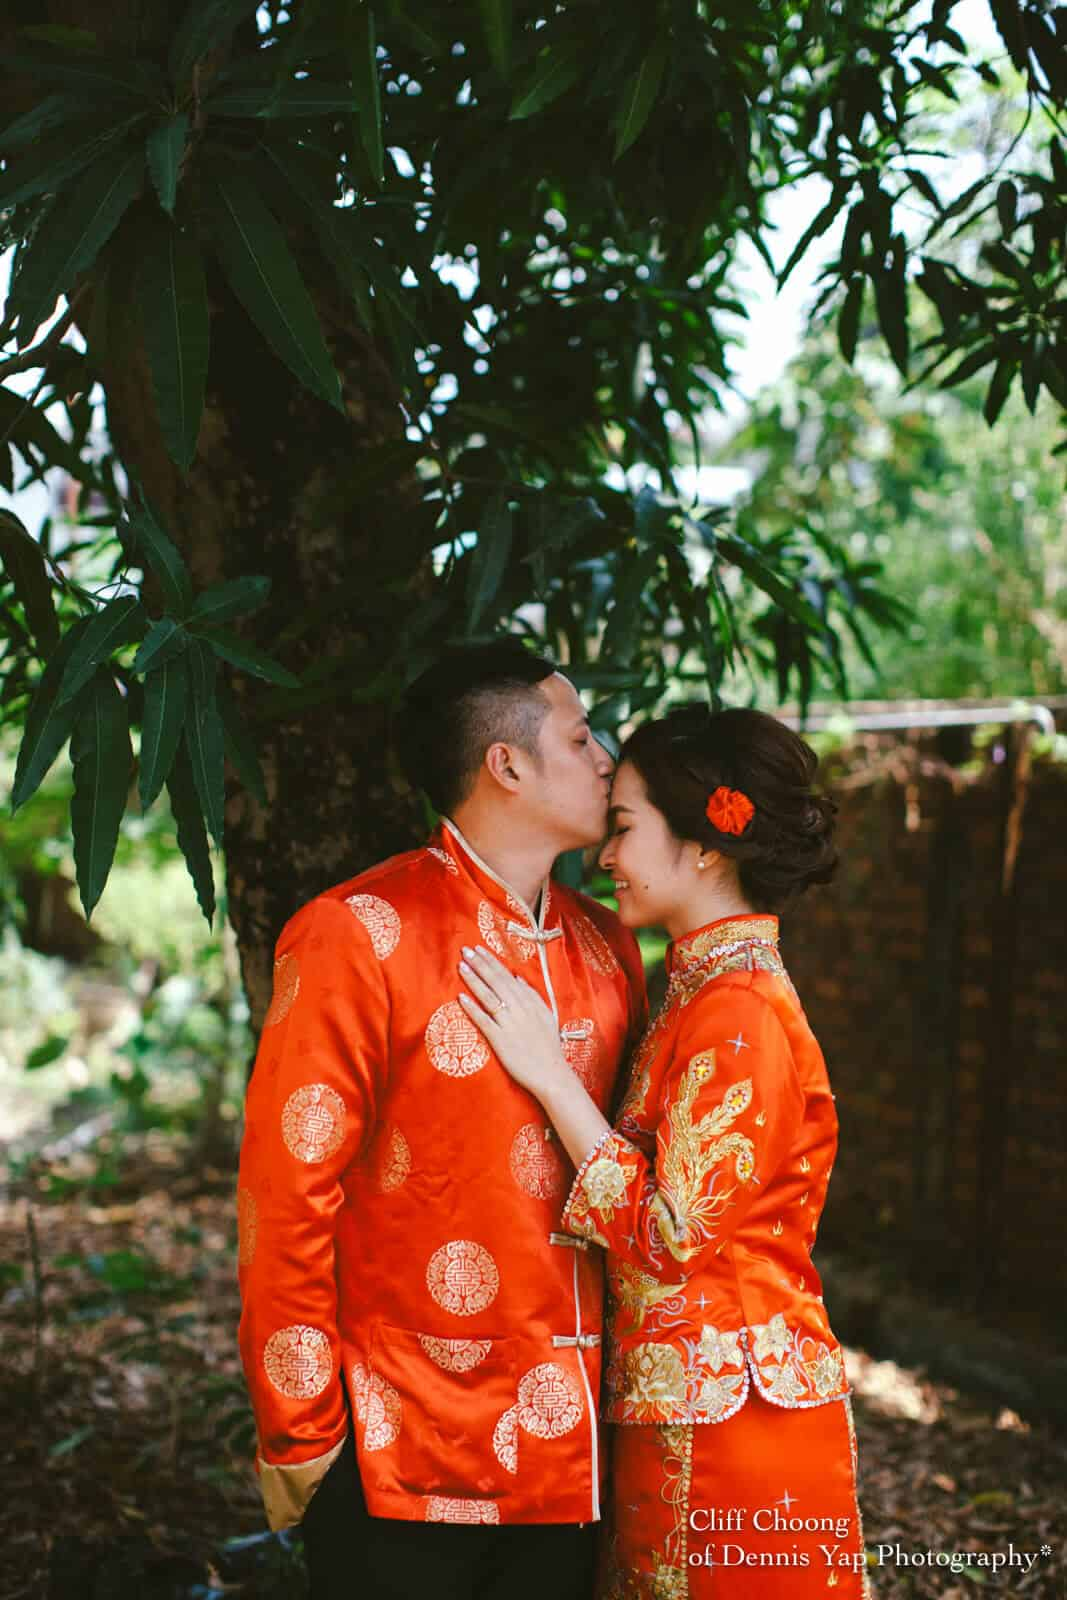 Wedding Day in Kota Kinabalu Sabah Malaysia Shangri-La Tanjung Aru Resort and Spa Cliff Choong Photography groom bride kiss